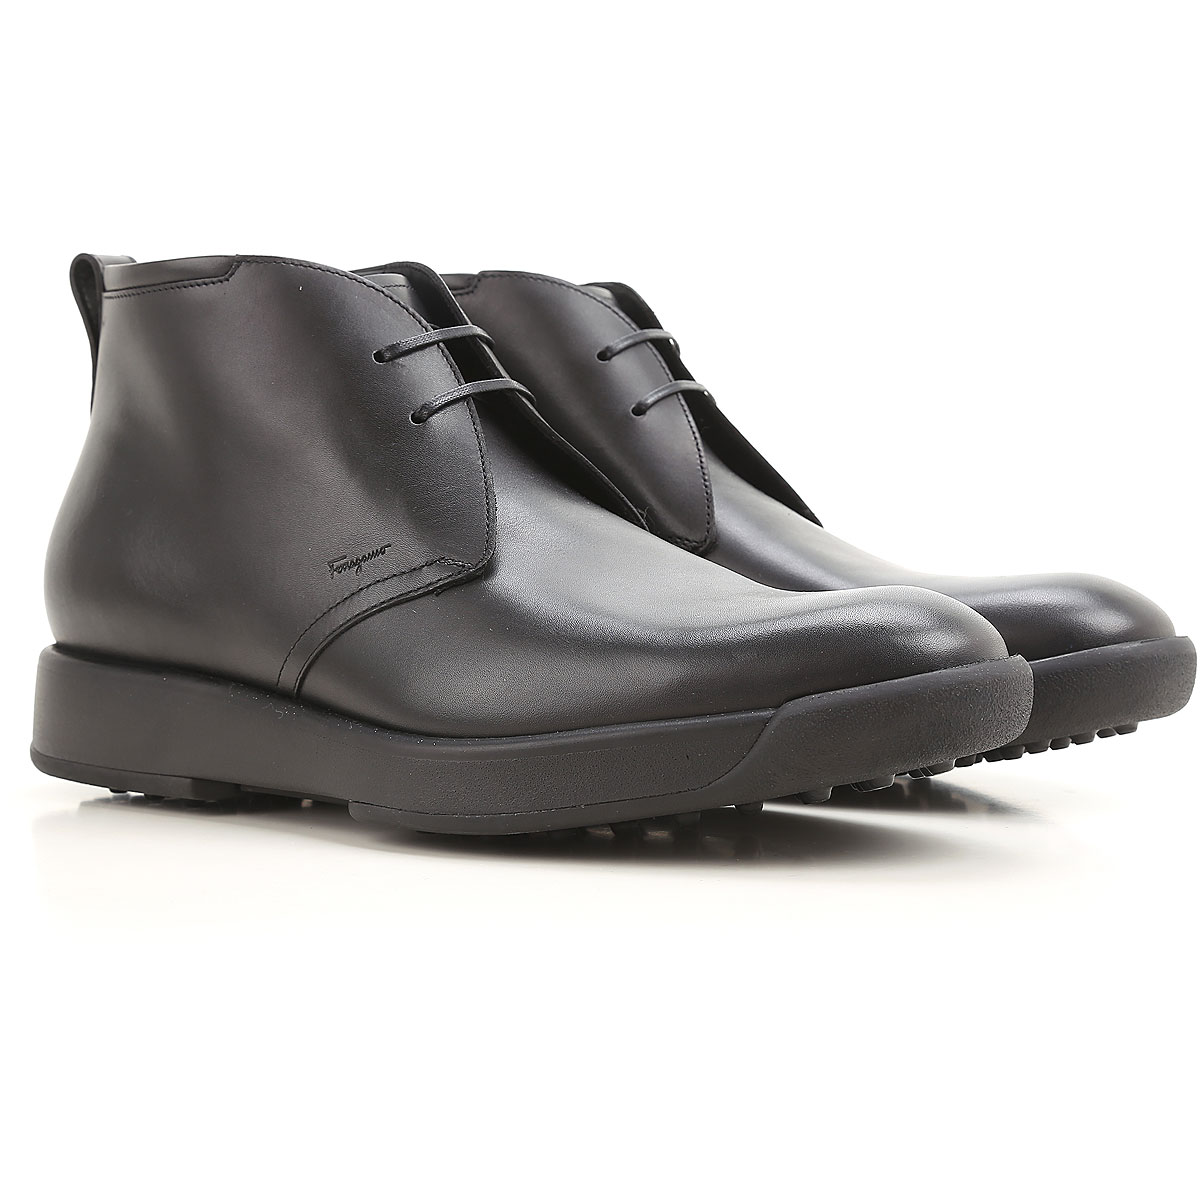 Image of Salvatore Ferragamo Boots for Men, Booties On Sale in Outlet, Black, Leather, 2017, 10.5 11.5 8.5 9 9.5